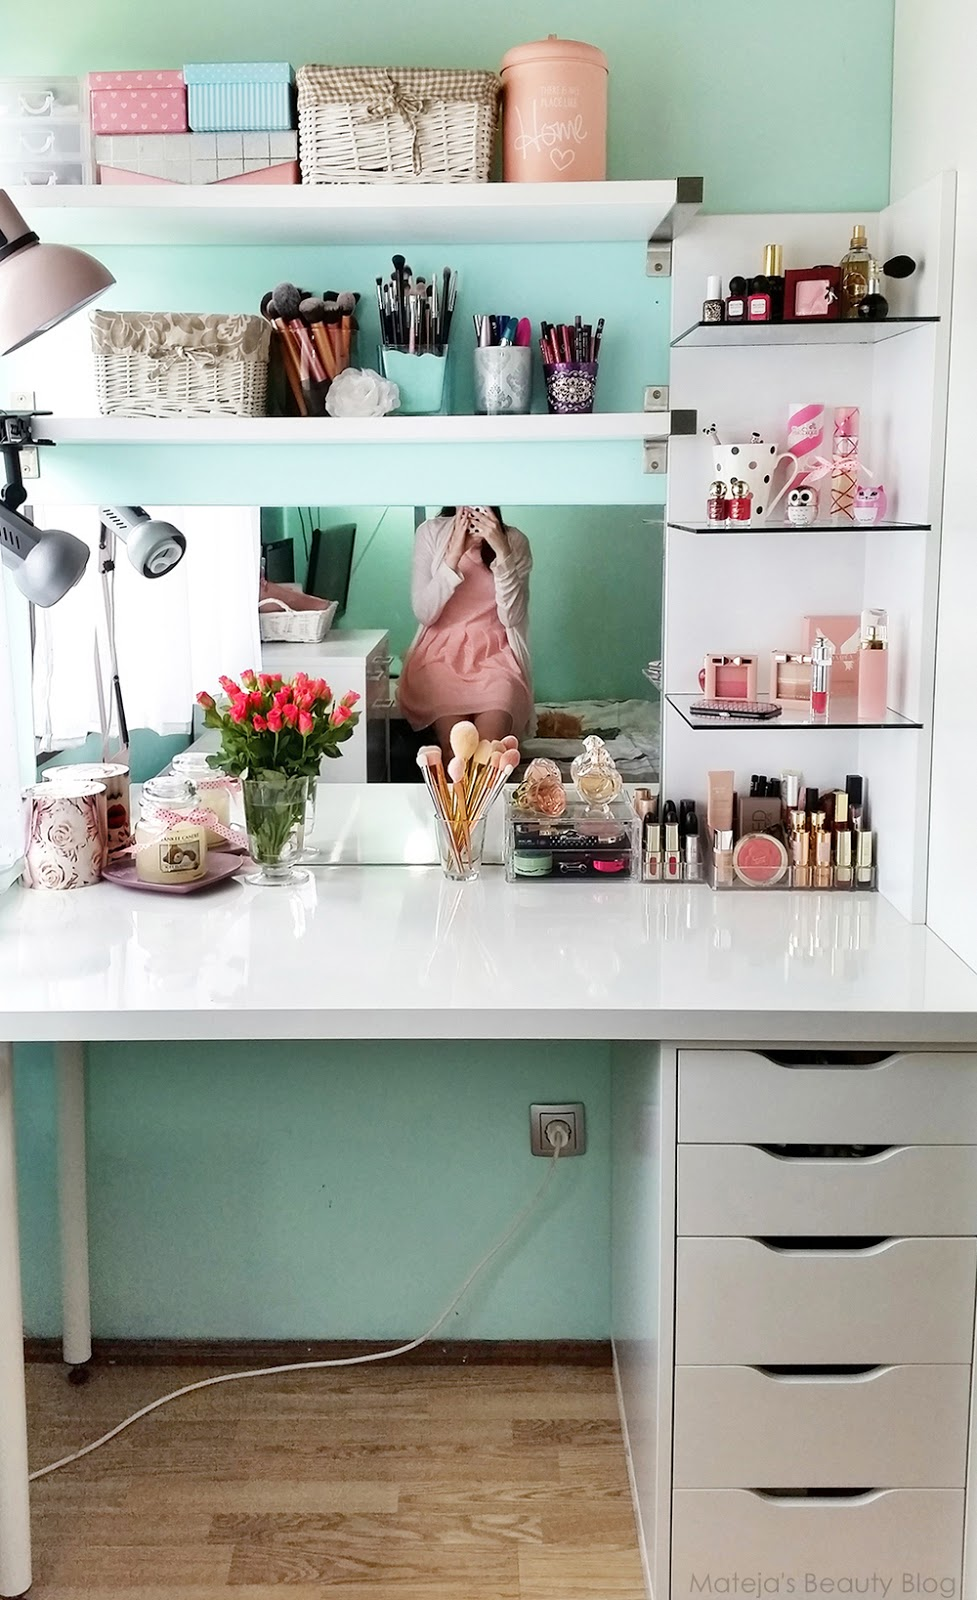 My Makeup Collection and Organisation Tips